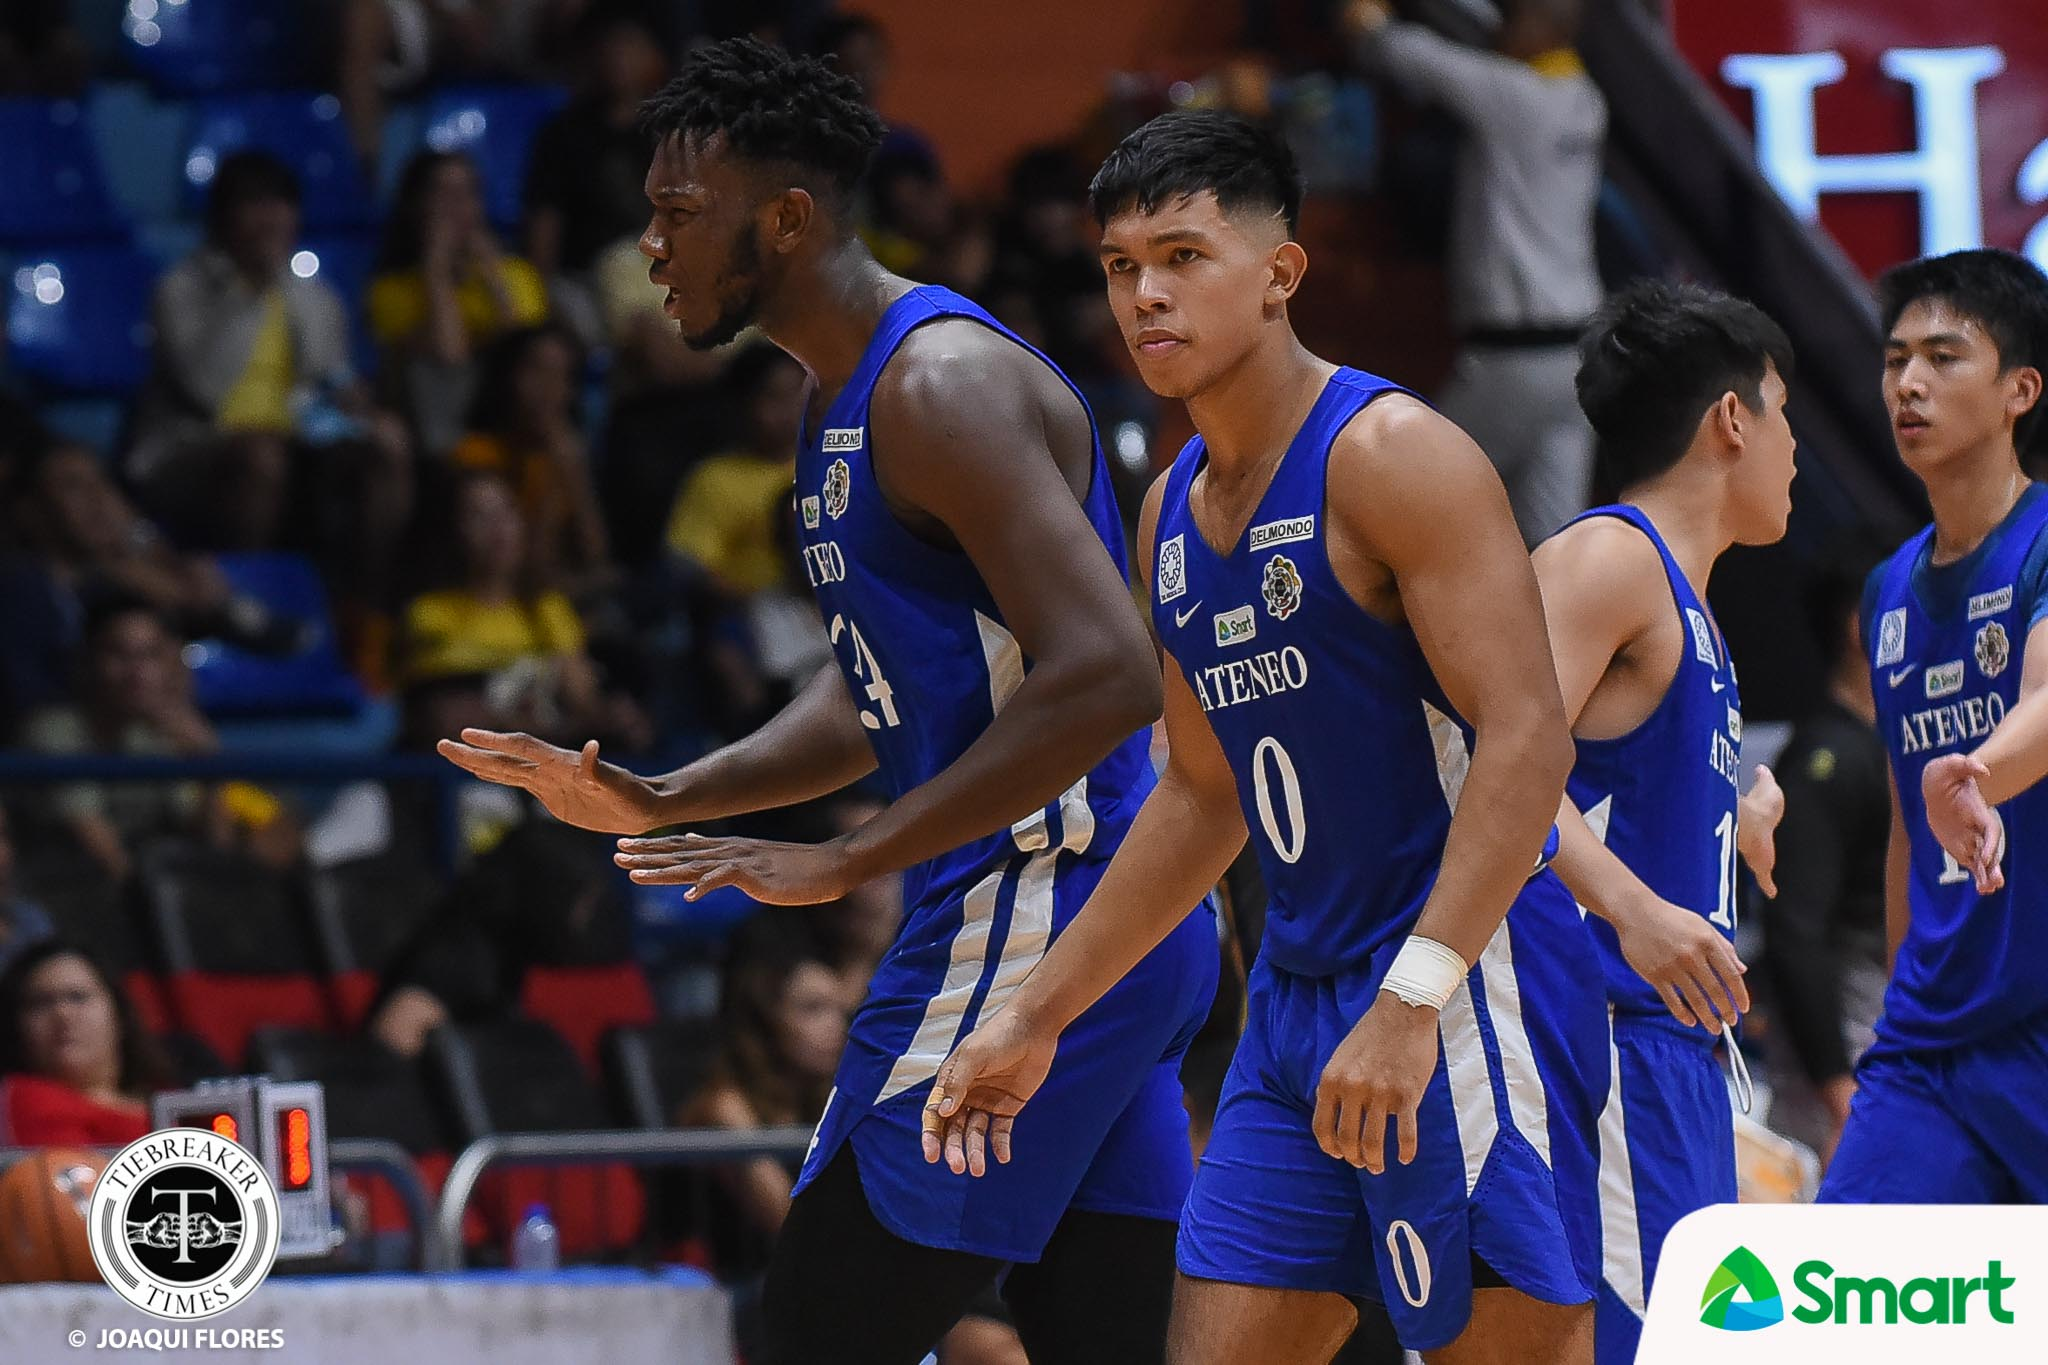 Tiebreaker Times Thirdy Ravena defends Ange Kouame: 'He's  probably the most gentle guy out there' ADMU Basketball News UAAP  UAAP Season 81 Men's Basketball UAAP Season 81 Thirdy Ravena Ateneo Men's Basketball Angelo Kouame